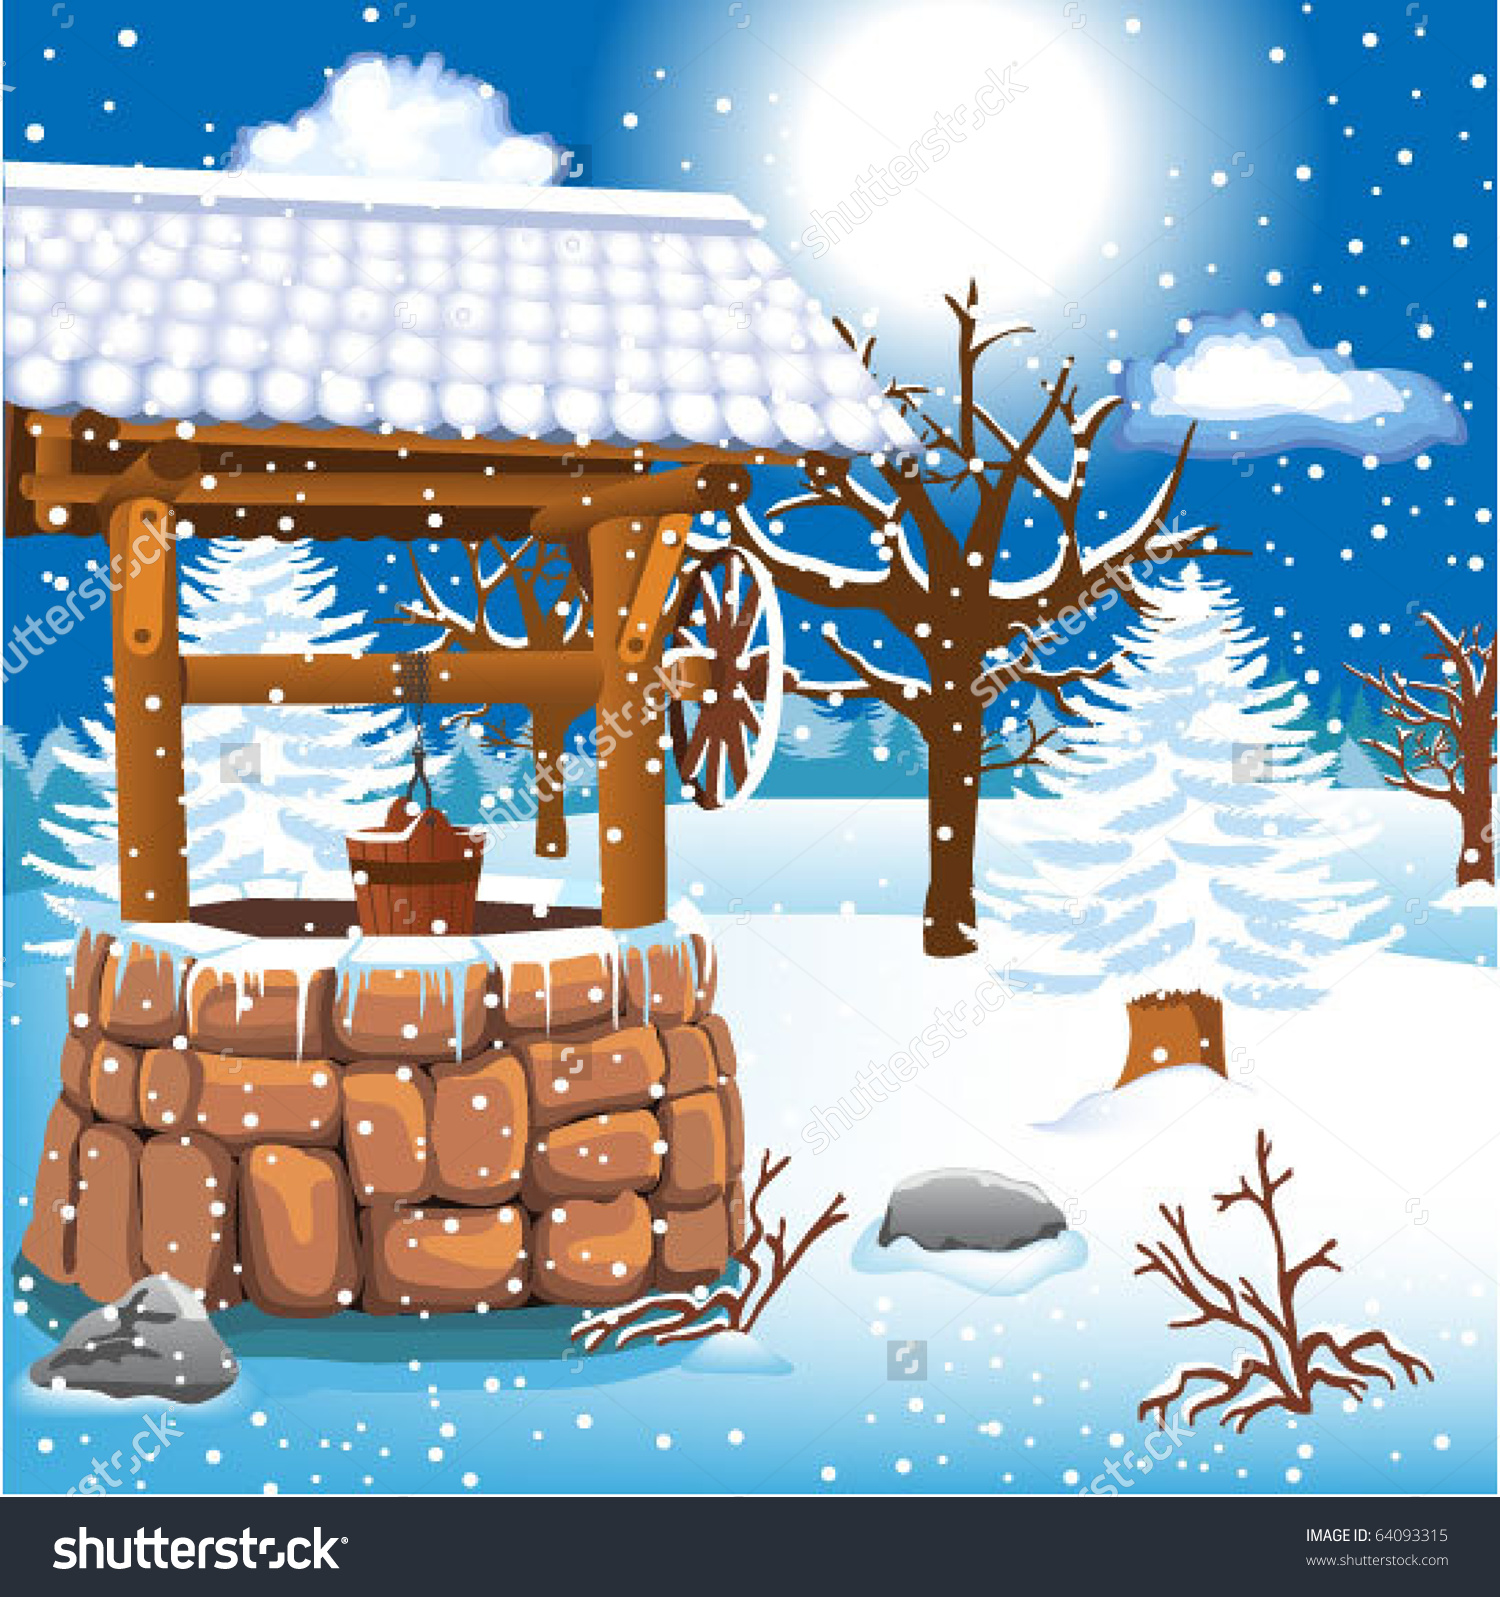 Winter Landscape With Frozen Well Stock Vector Illustration.